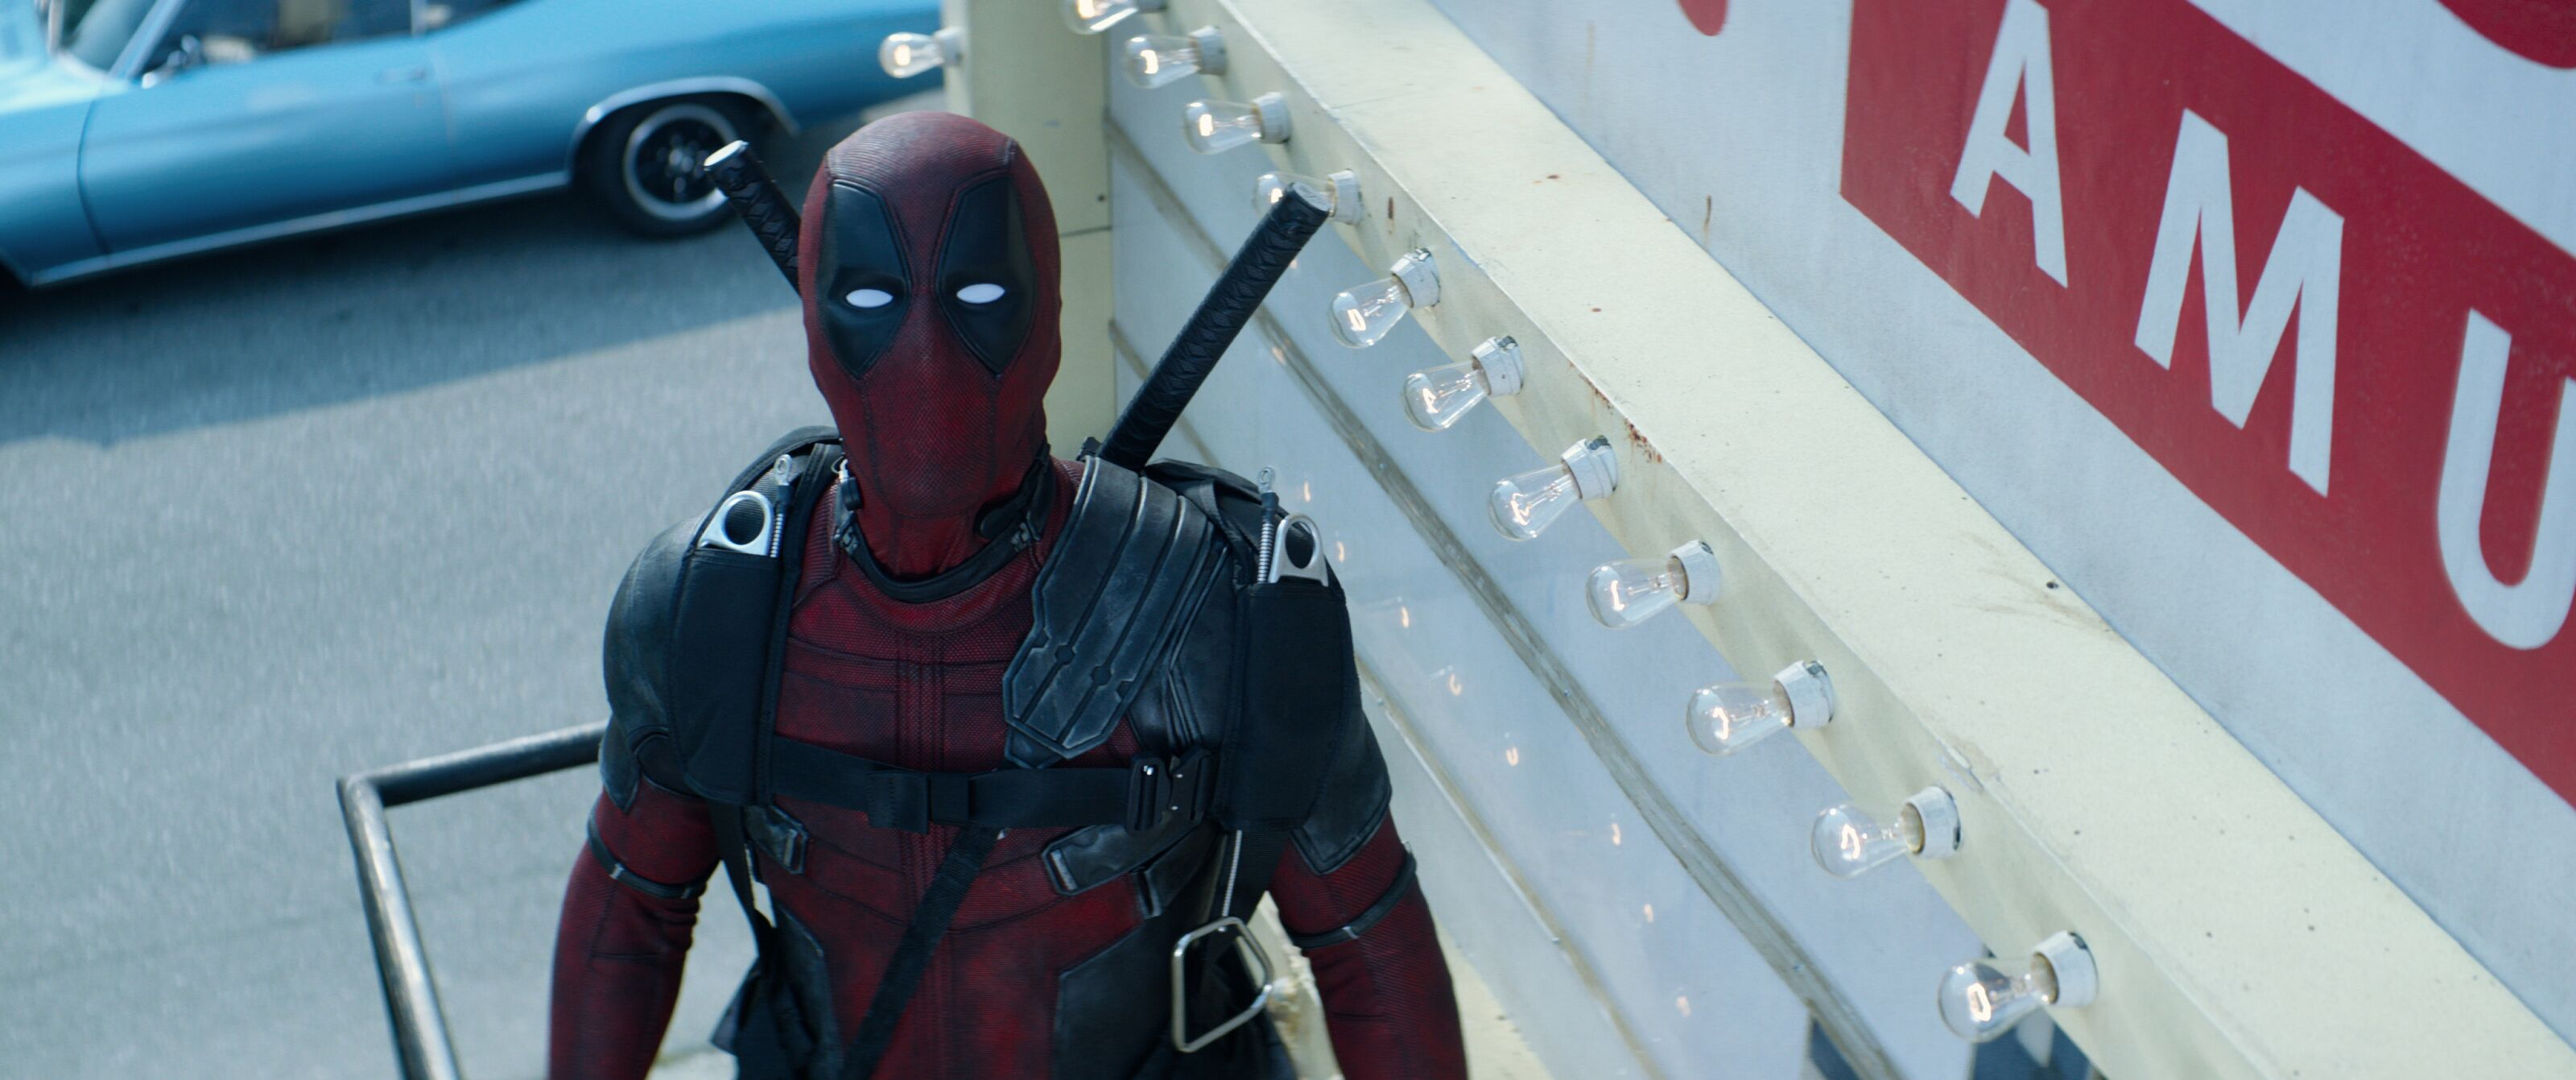 Rumor: Marvel Studios is weighing options on Deadpool's MCU introduction